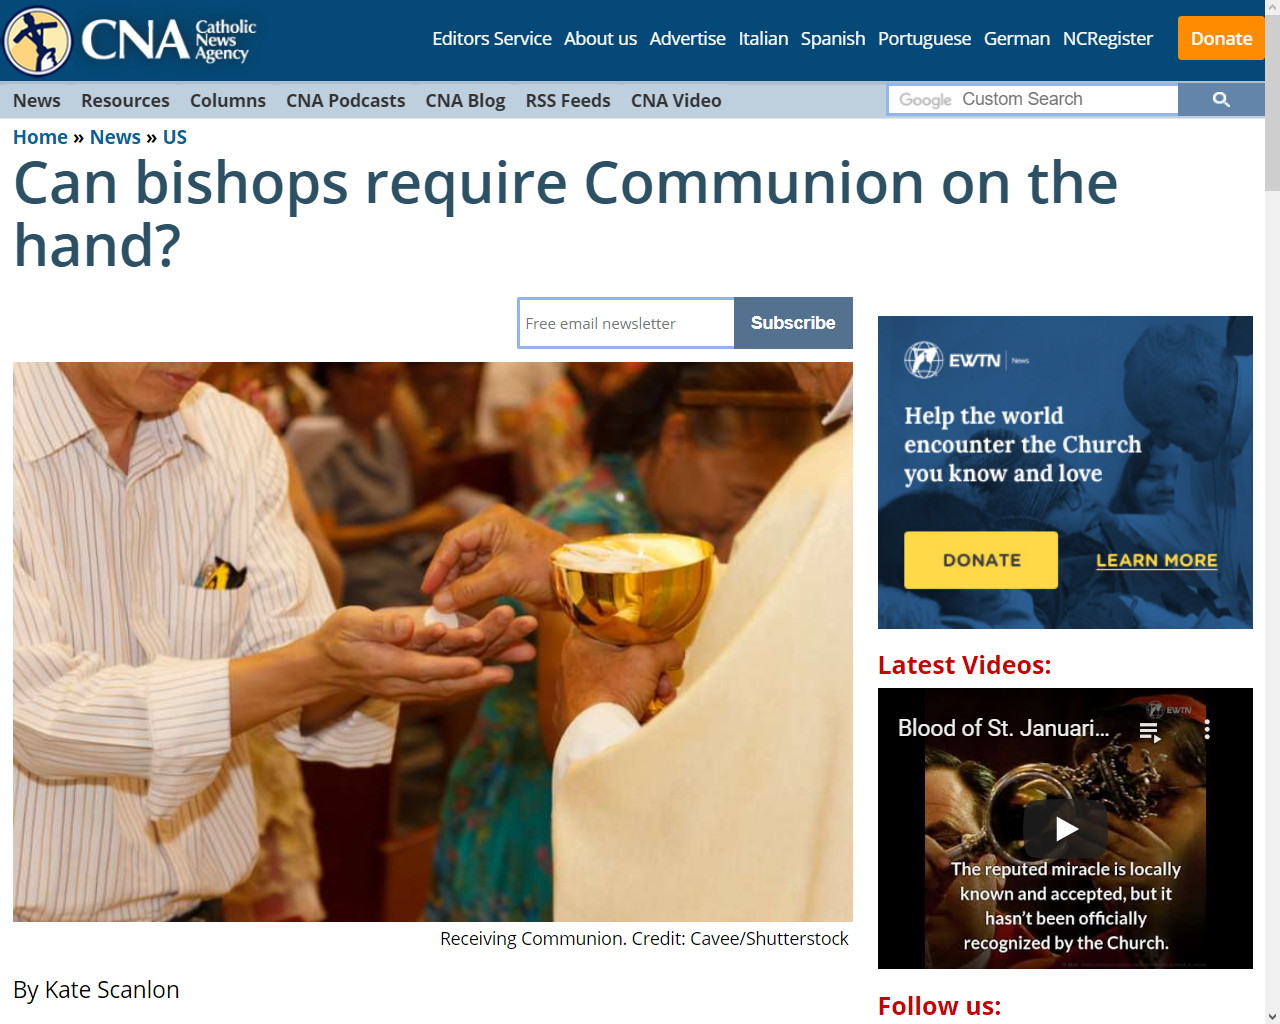 https://www.catholicnewsagency.com/news/can-bishops-require-communion-on-the-hand-82862